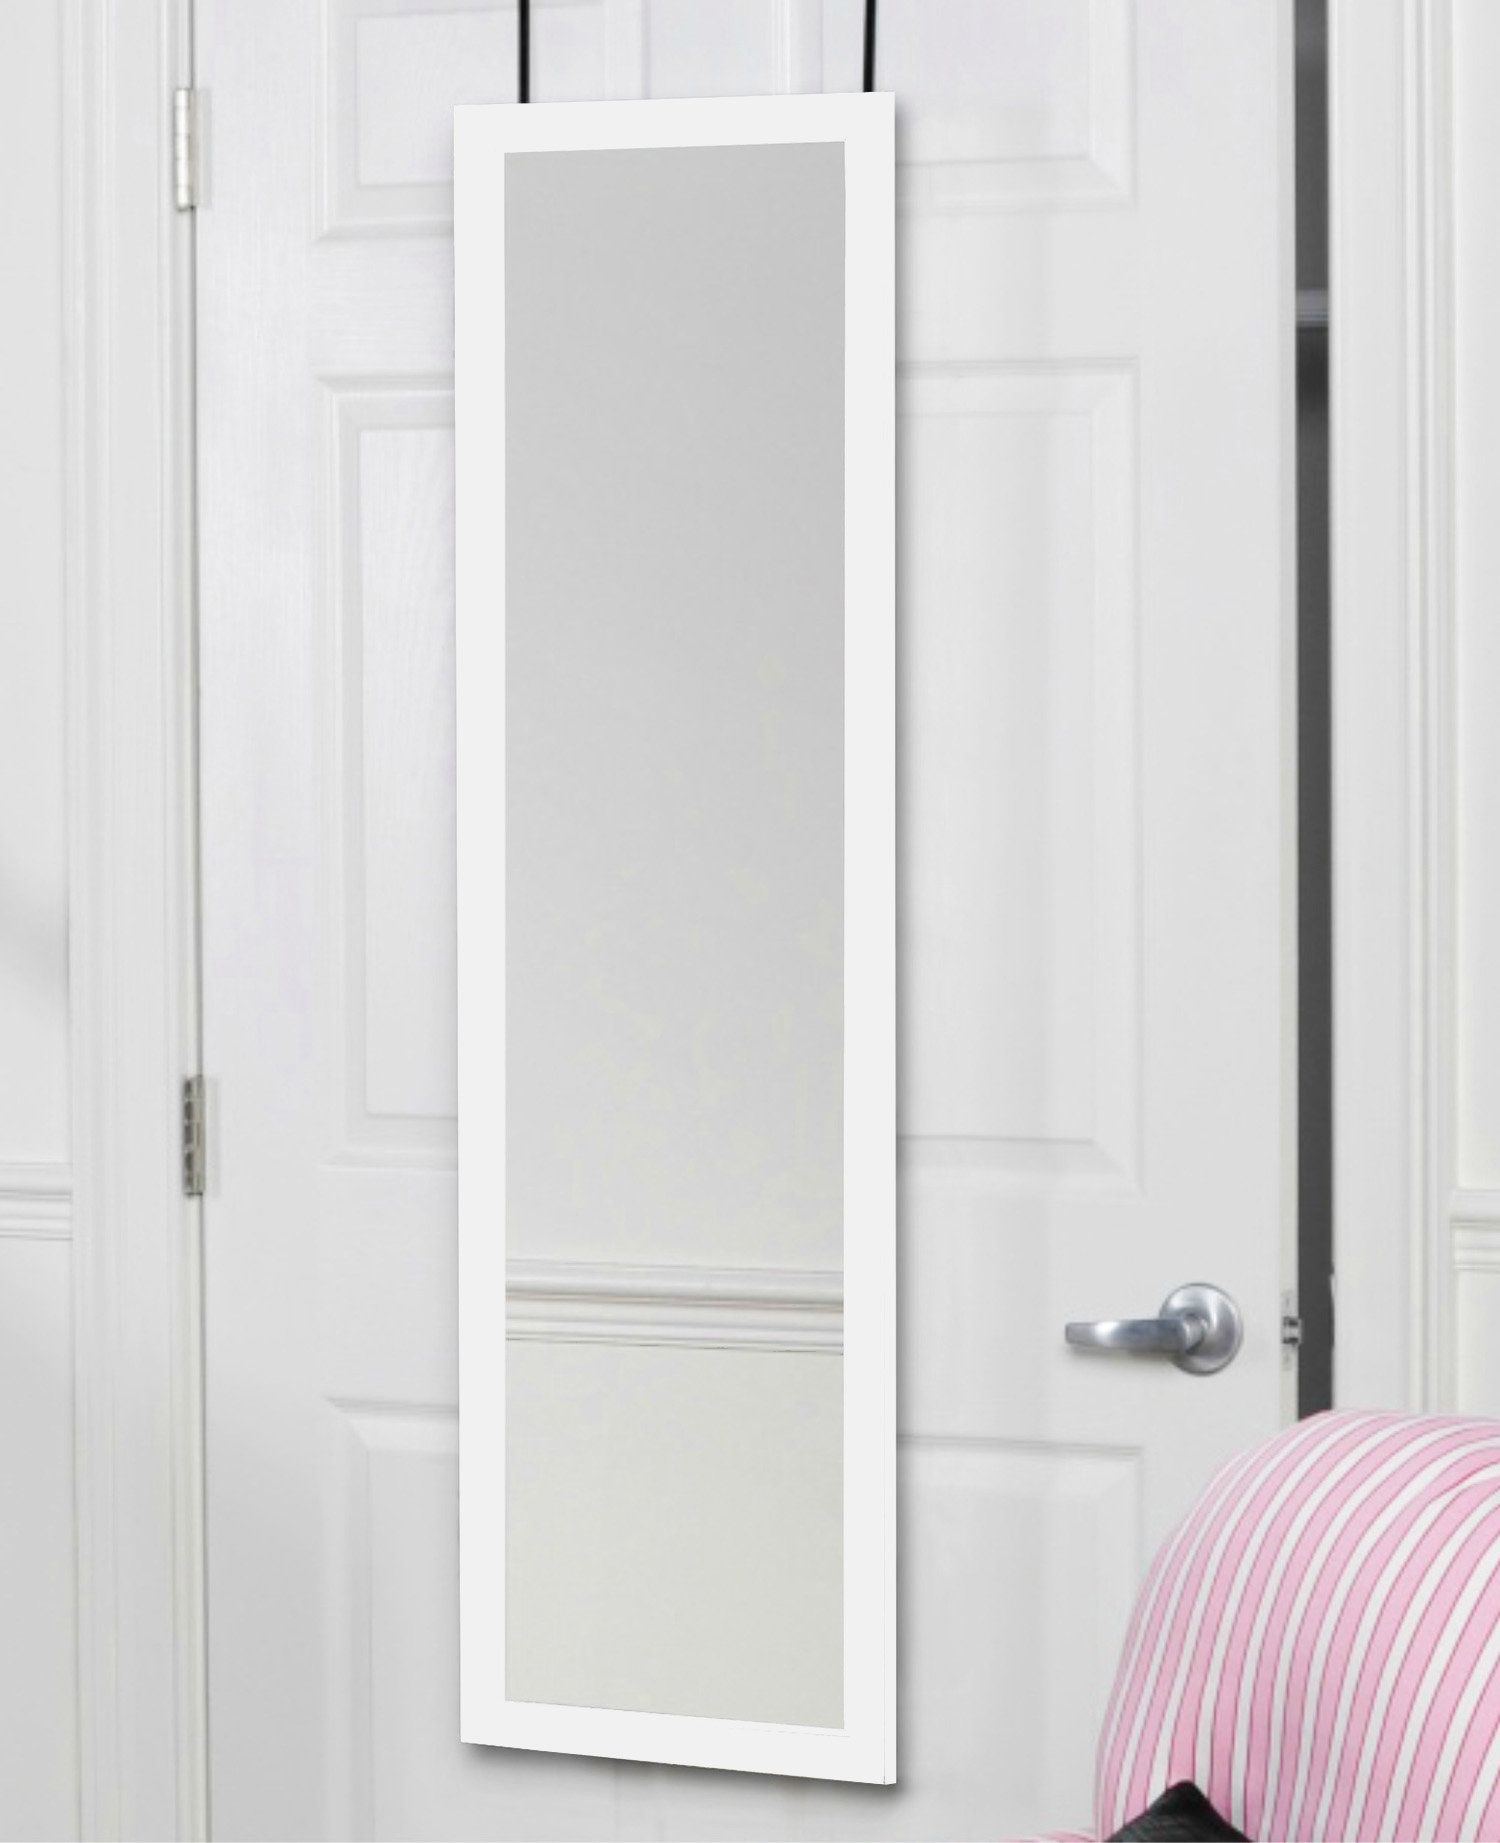 diy ideas home mirrors la for floor of doors your out a mirror elm pin door precious mirrored chunky west sliding closet